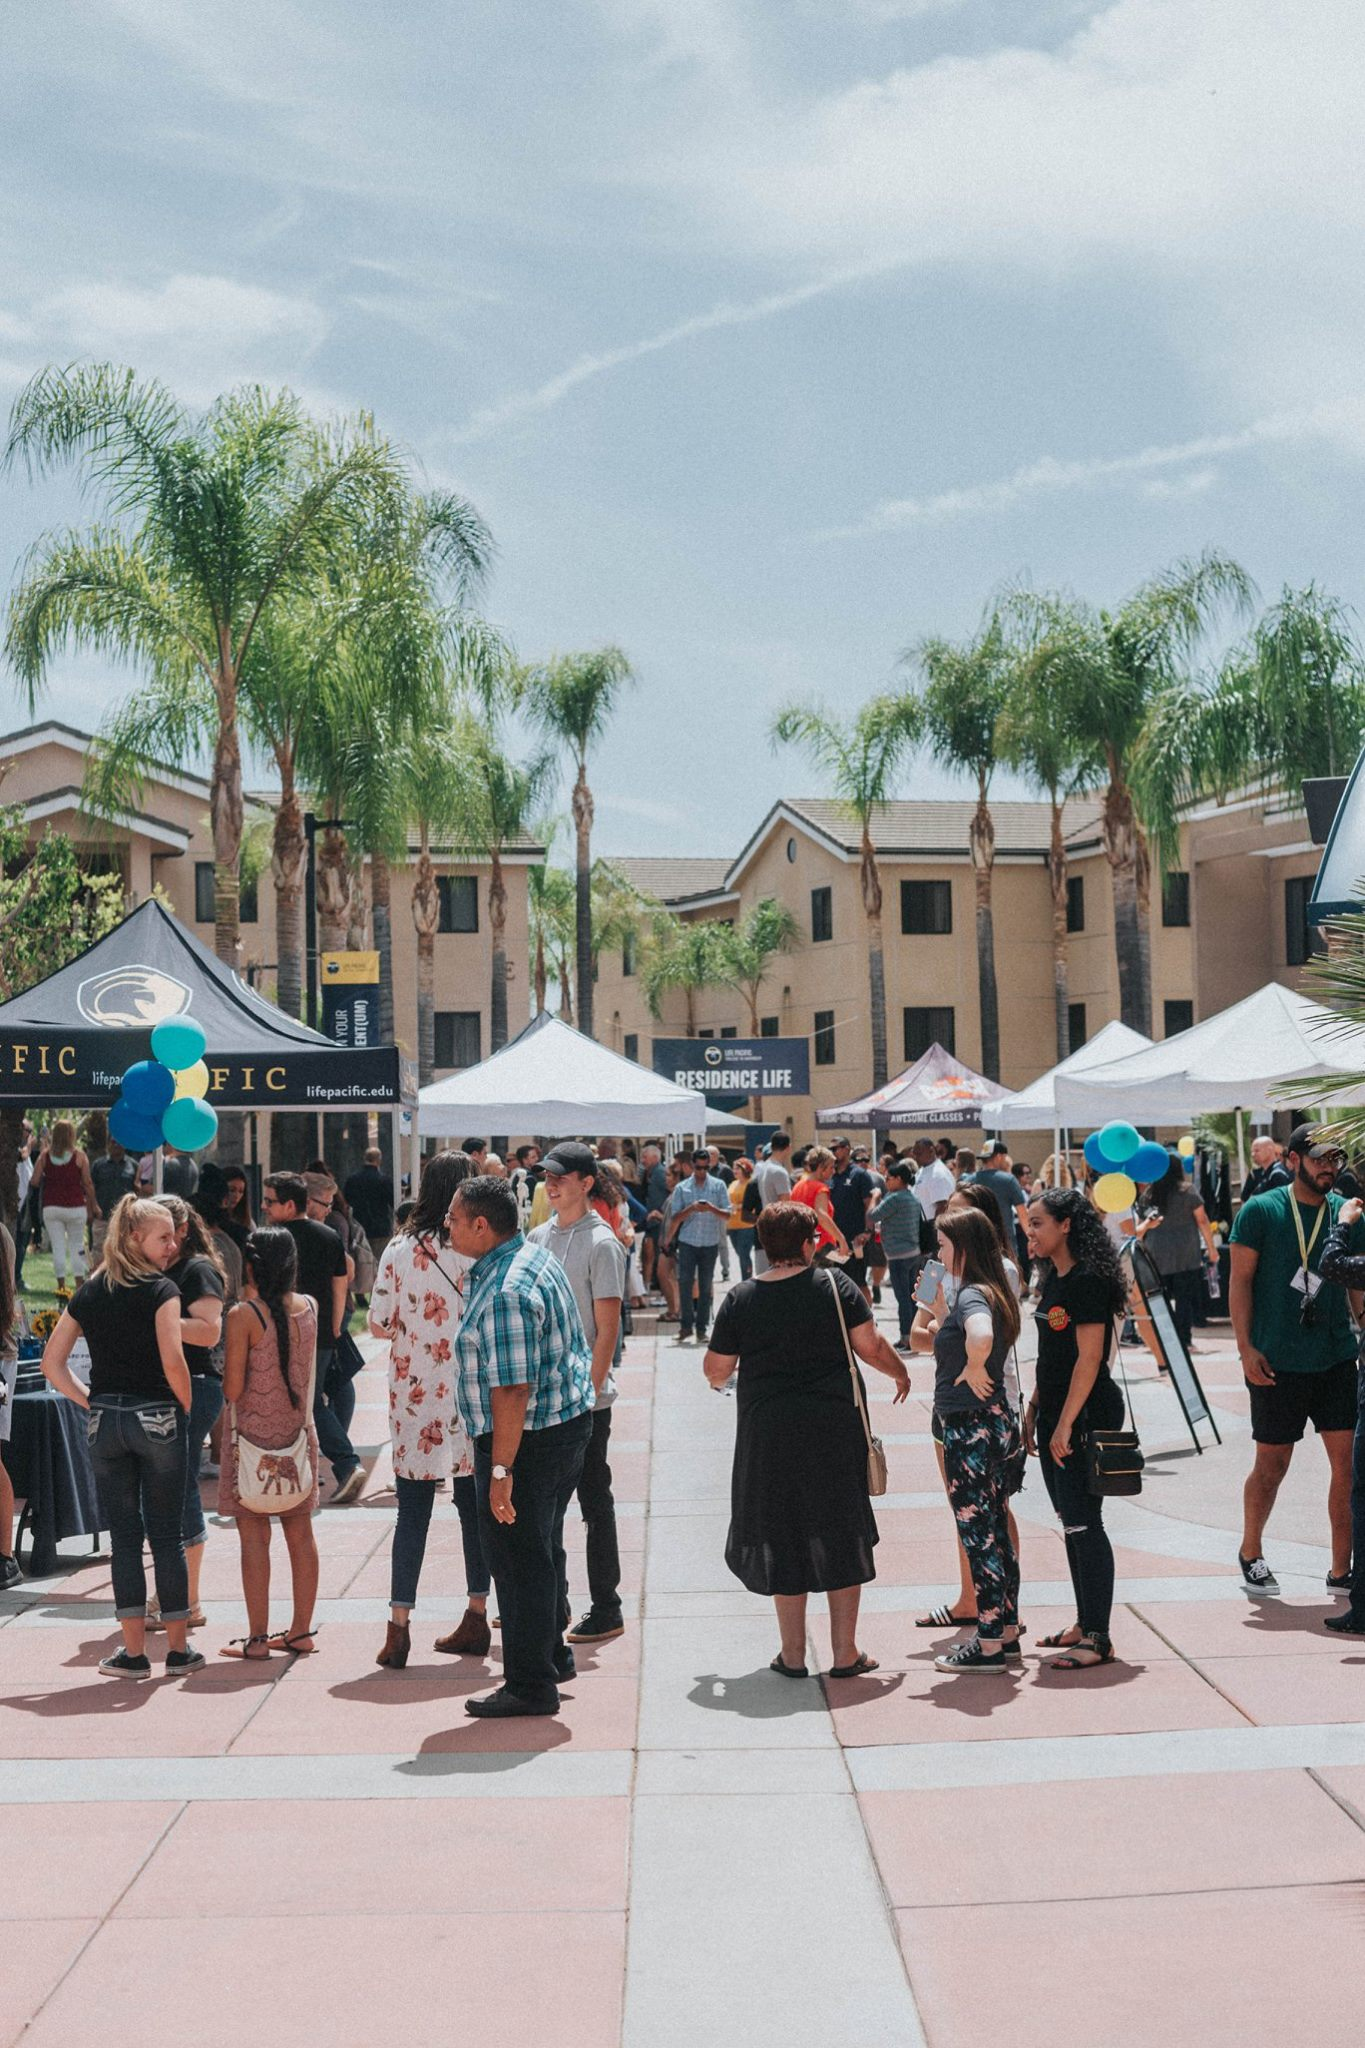 Photo of campus courtyard with students and families conversating.